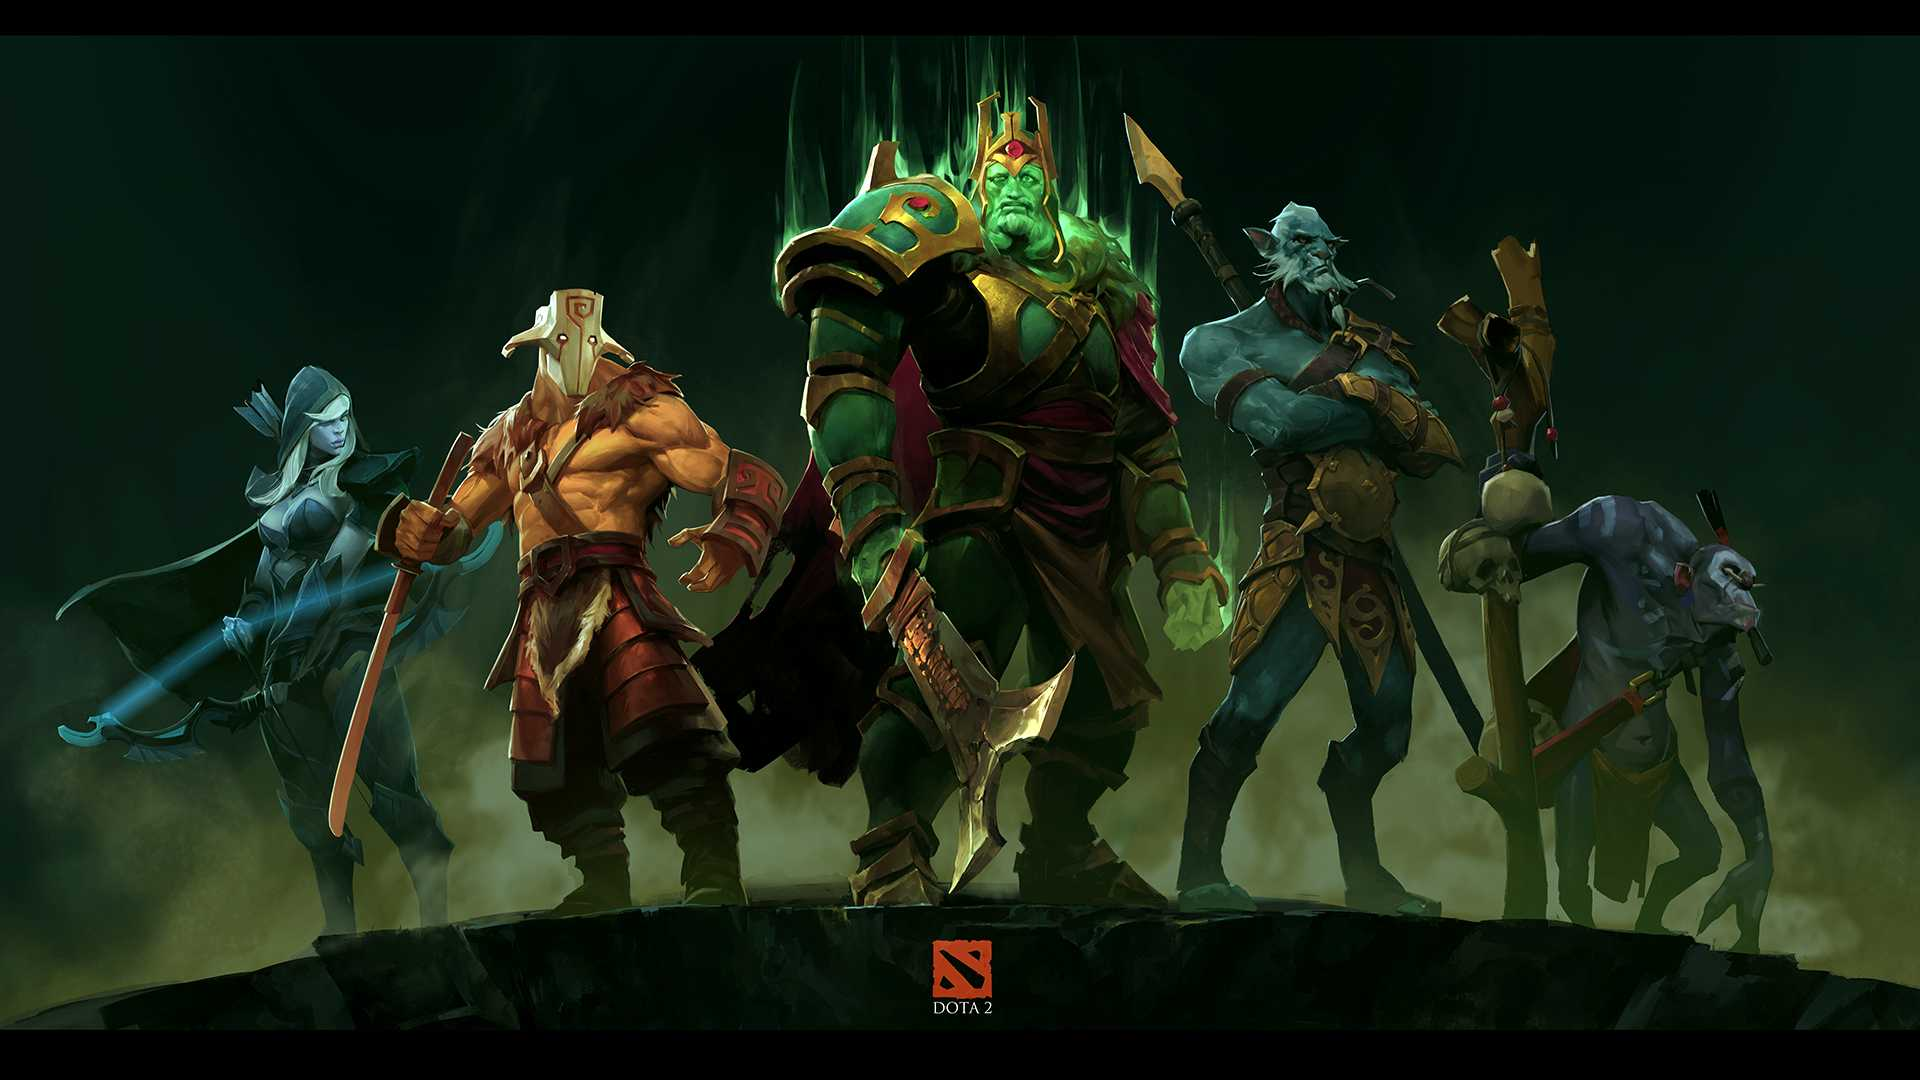 Valve asks for phone numbers to confirm Dota 2 player identities